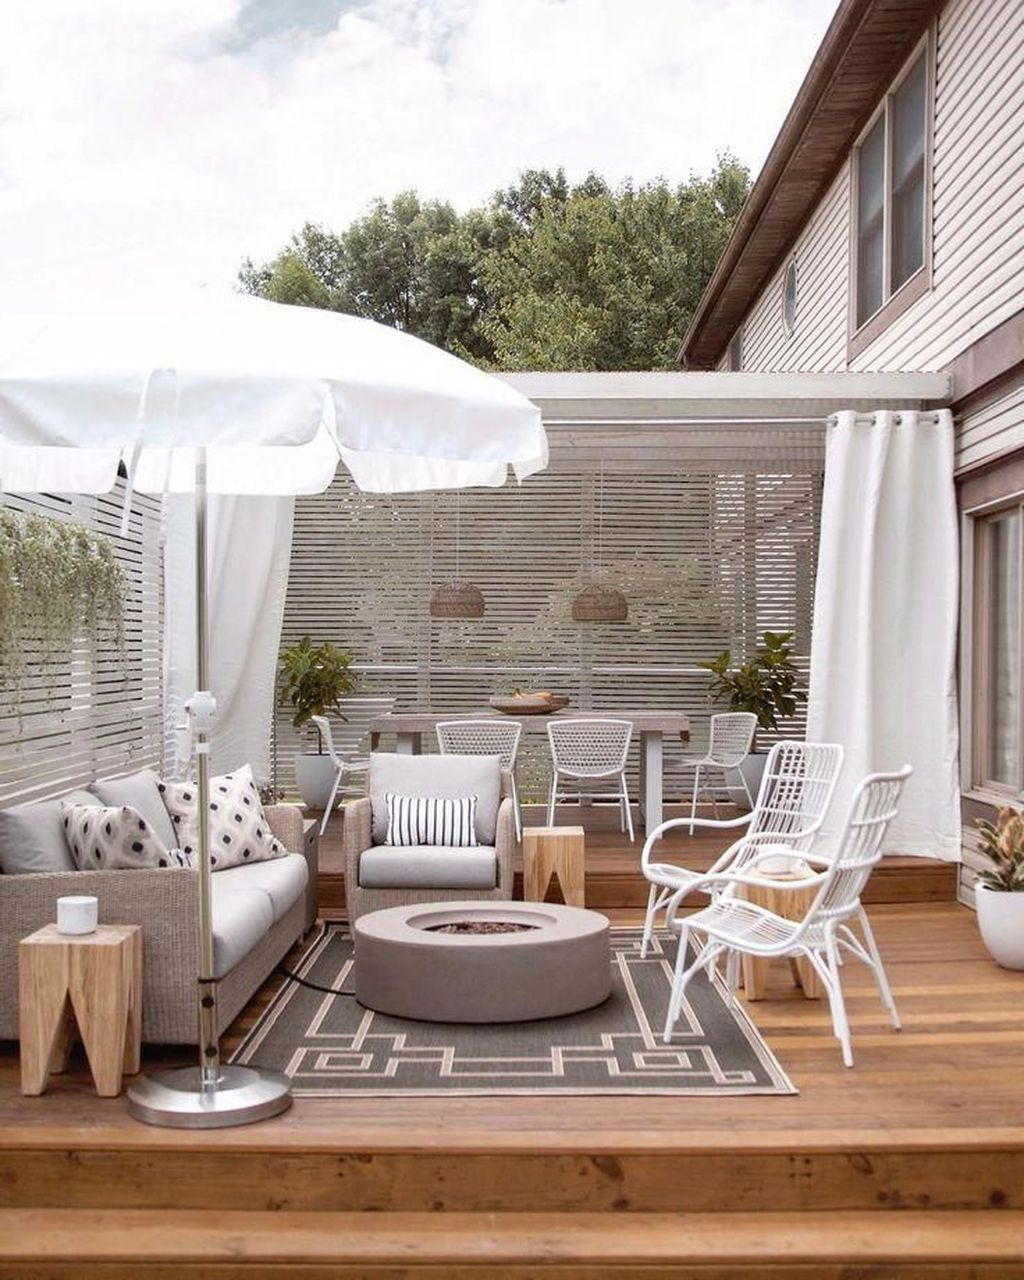 Admirable Cozy Patio Design Ideas To Relaxing On A Sunny Day 38